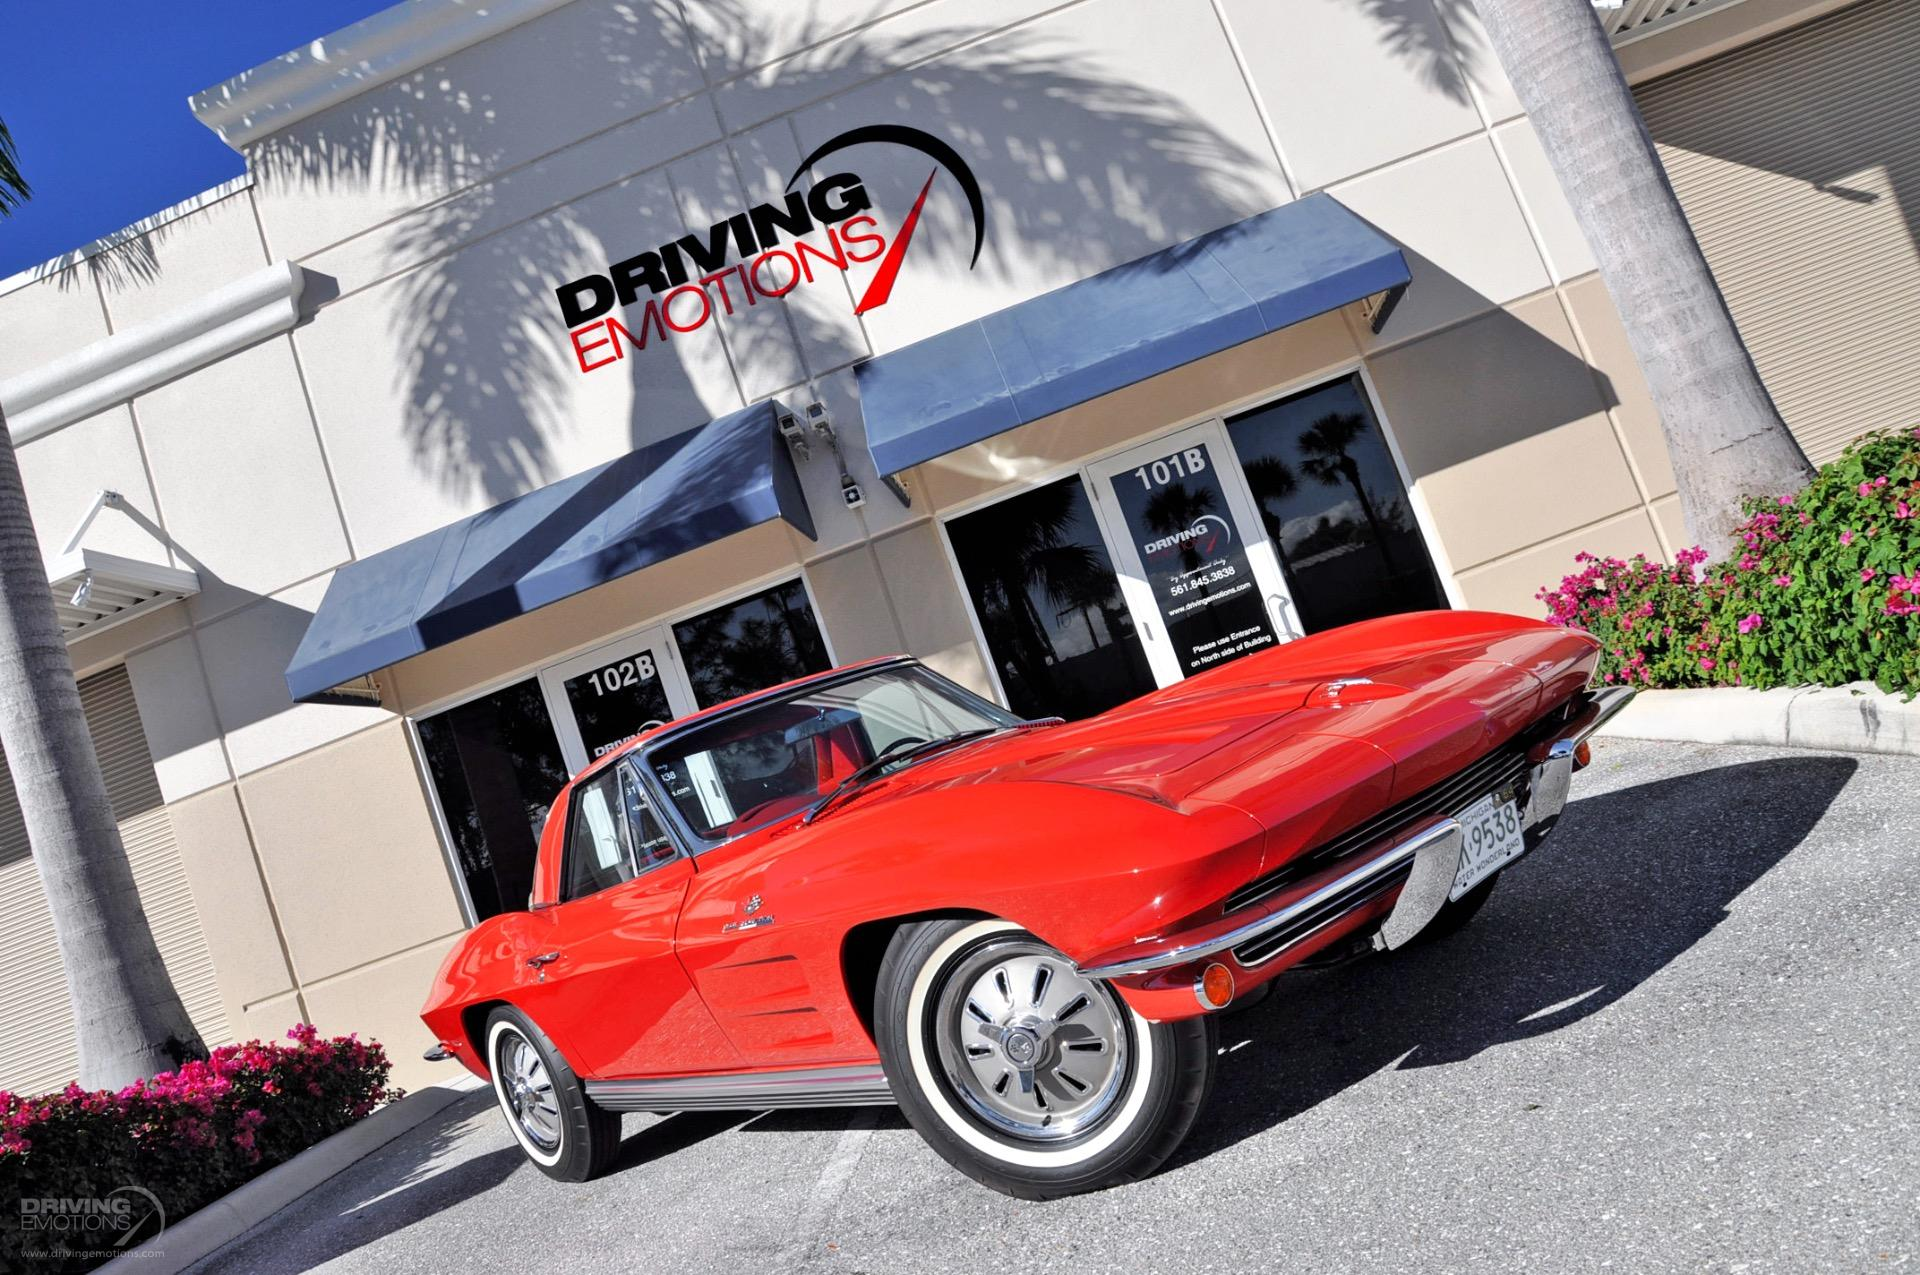 Used 1964 Chevrolet Corvette Convertible Fuelie FUELIE 375HP V8 Fuel Injected Convertible | Lake Park, FL